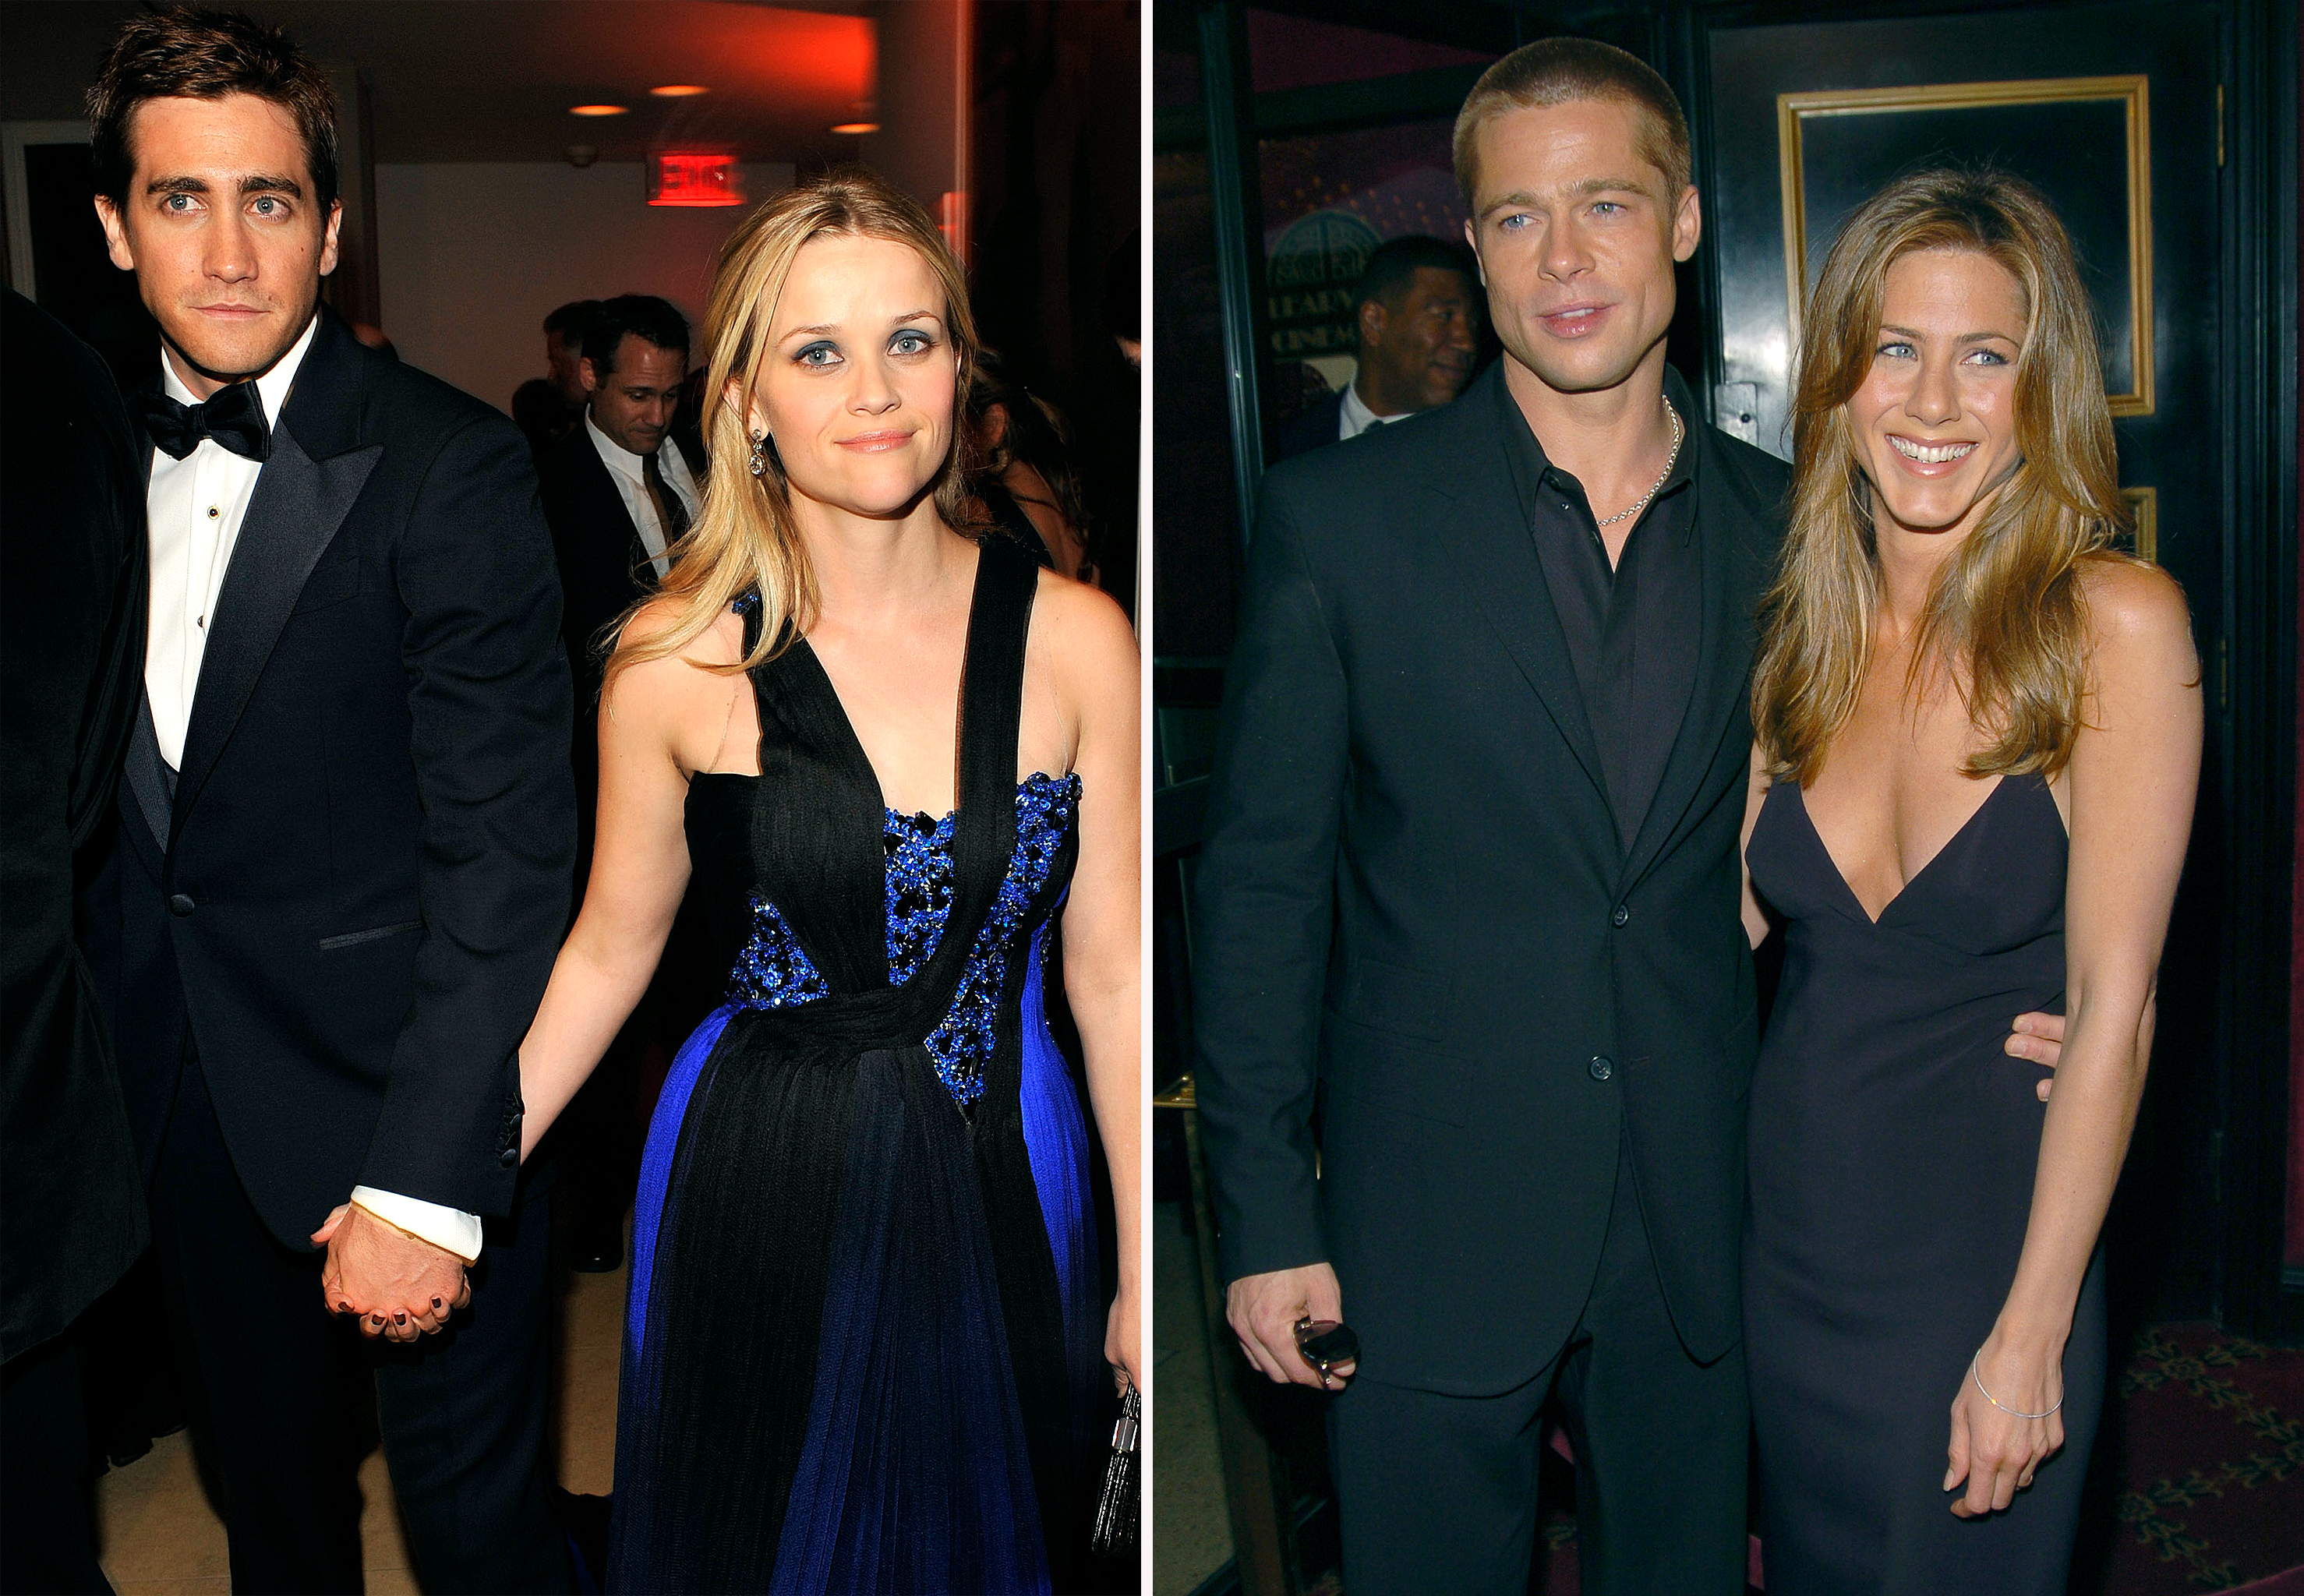 Jake Gyllenhaal and Reese Witherspoon, Brad Pitt and Jennifer Aniston (FilmMagic/WireImage)